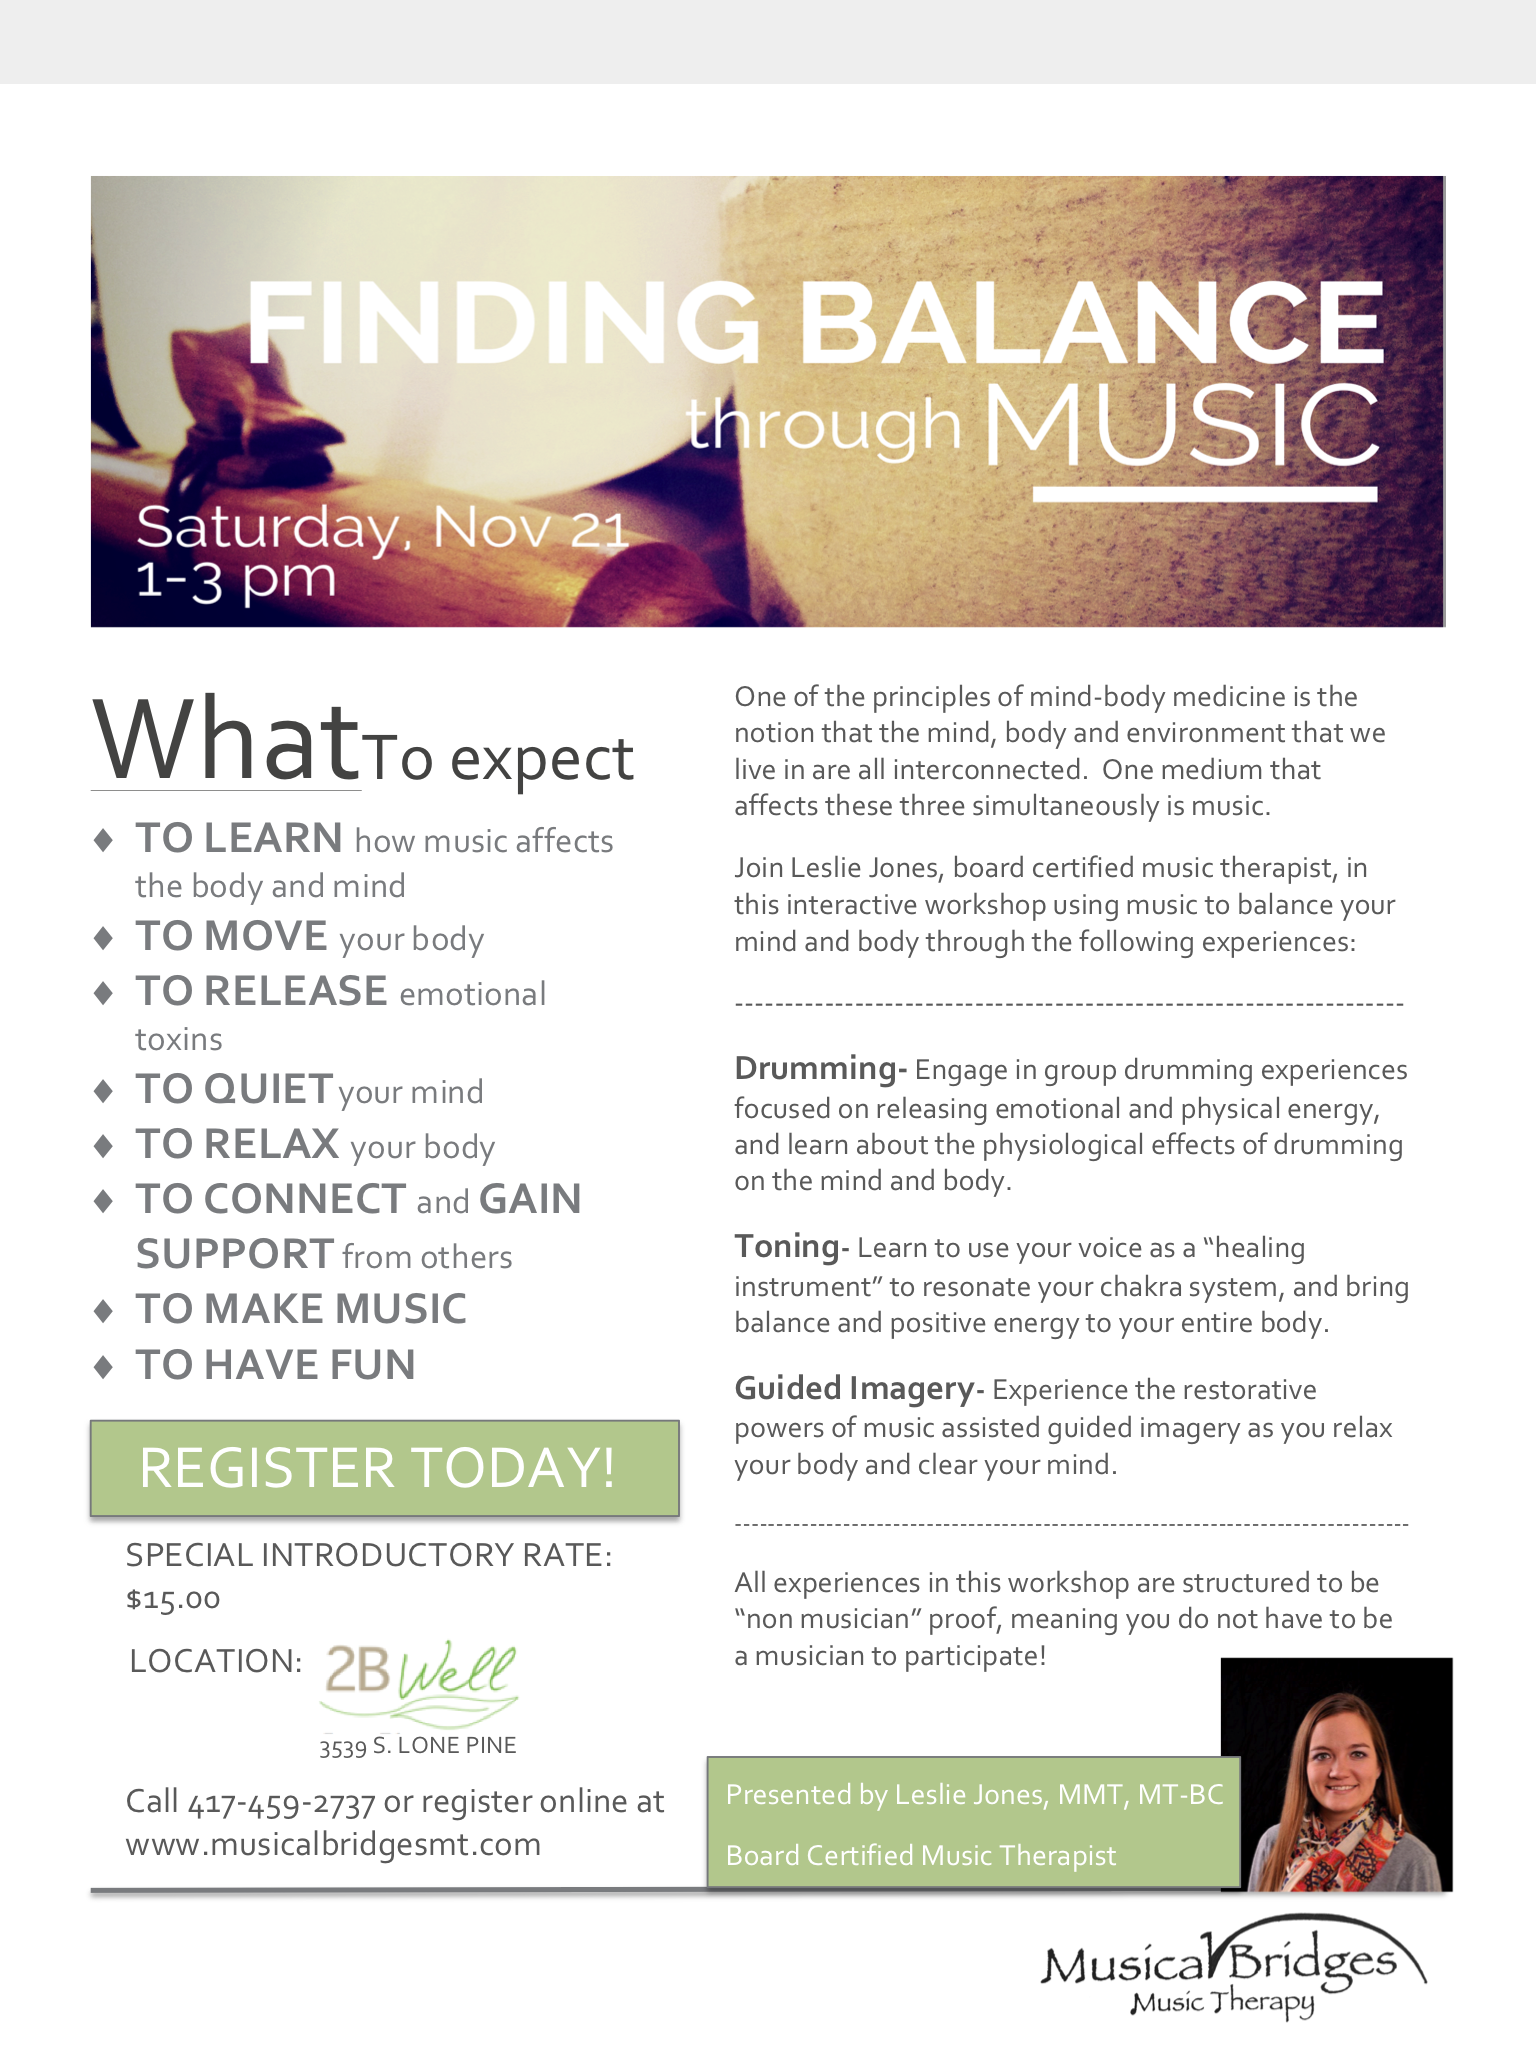 Introductory Music & Wellness Workshop at 2B Well |